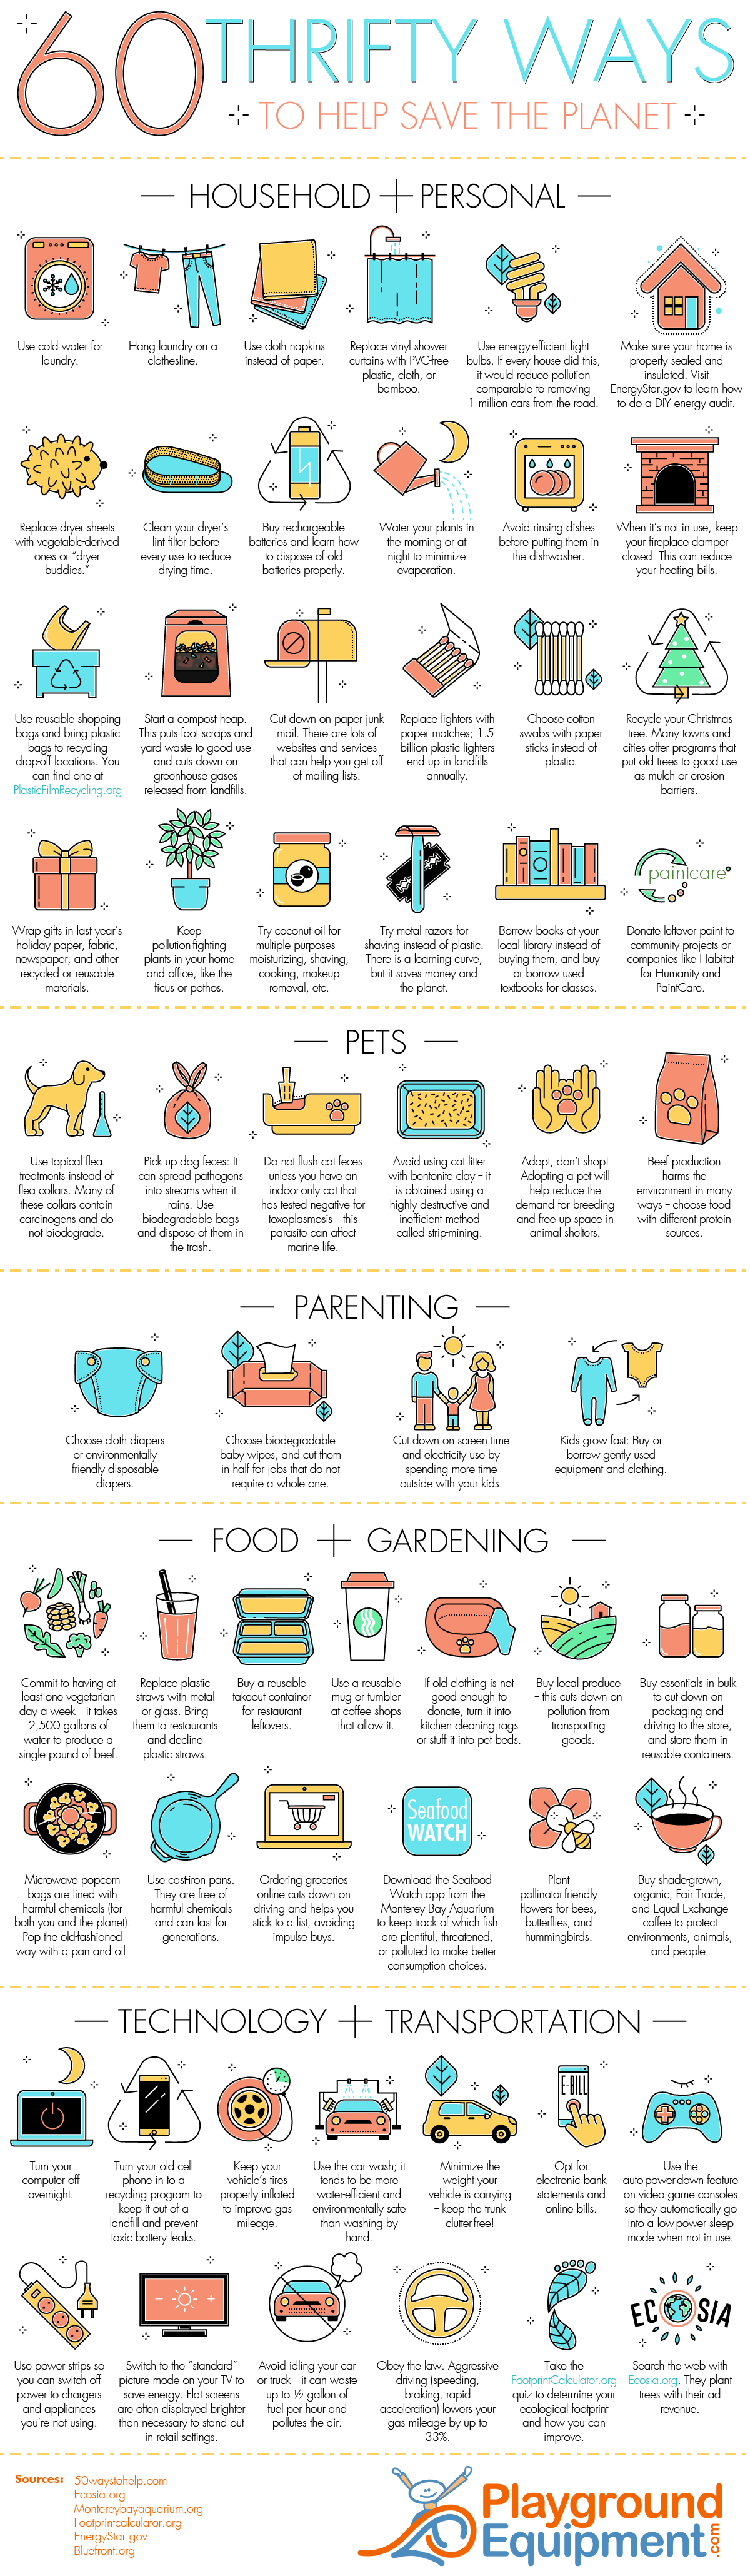 60 Thrifty Ways You Can Help Save the Planet on Earth Day #Infographic